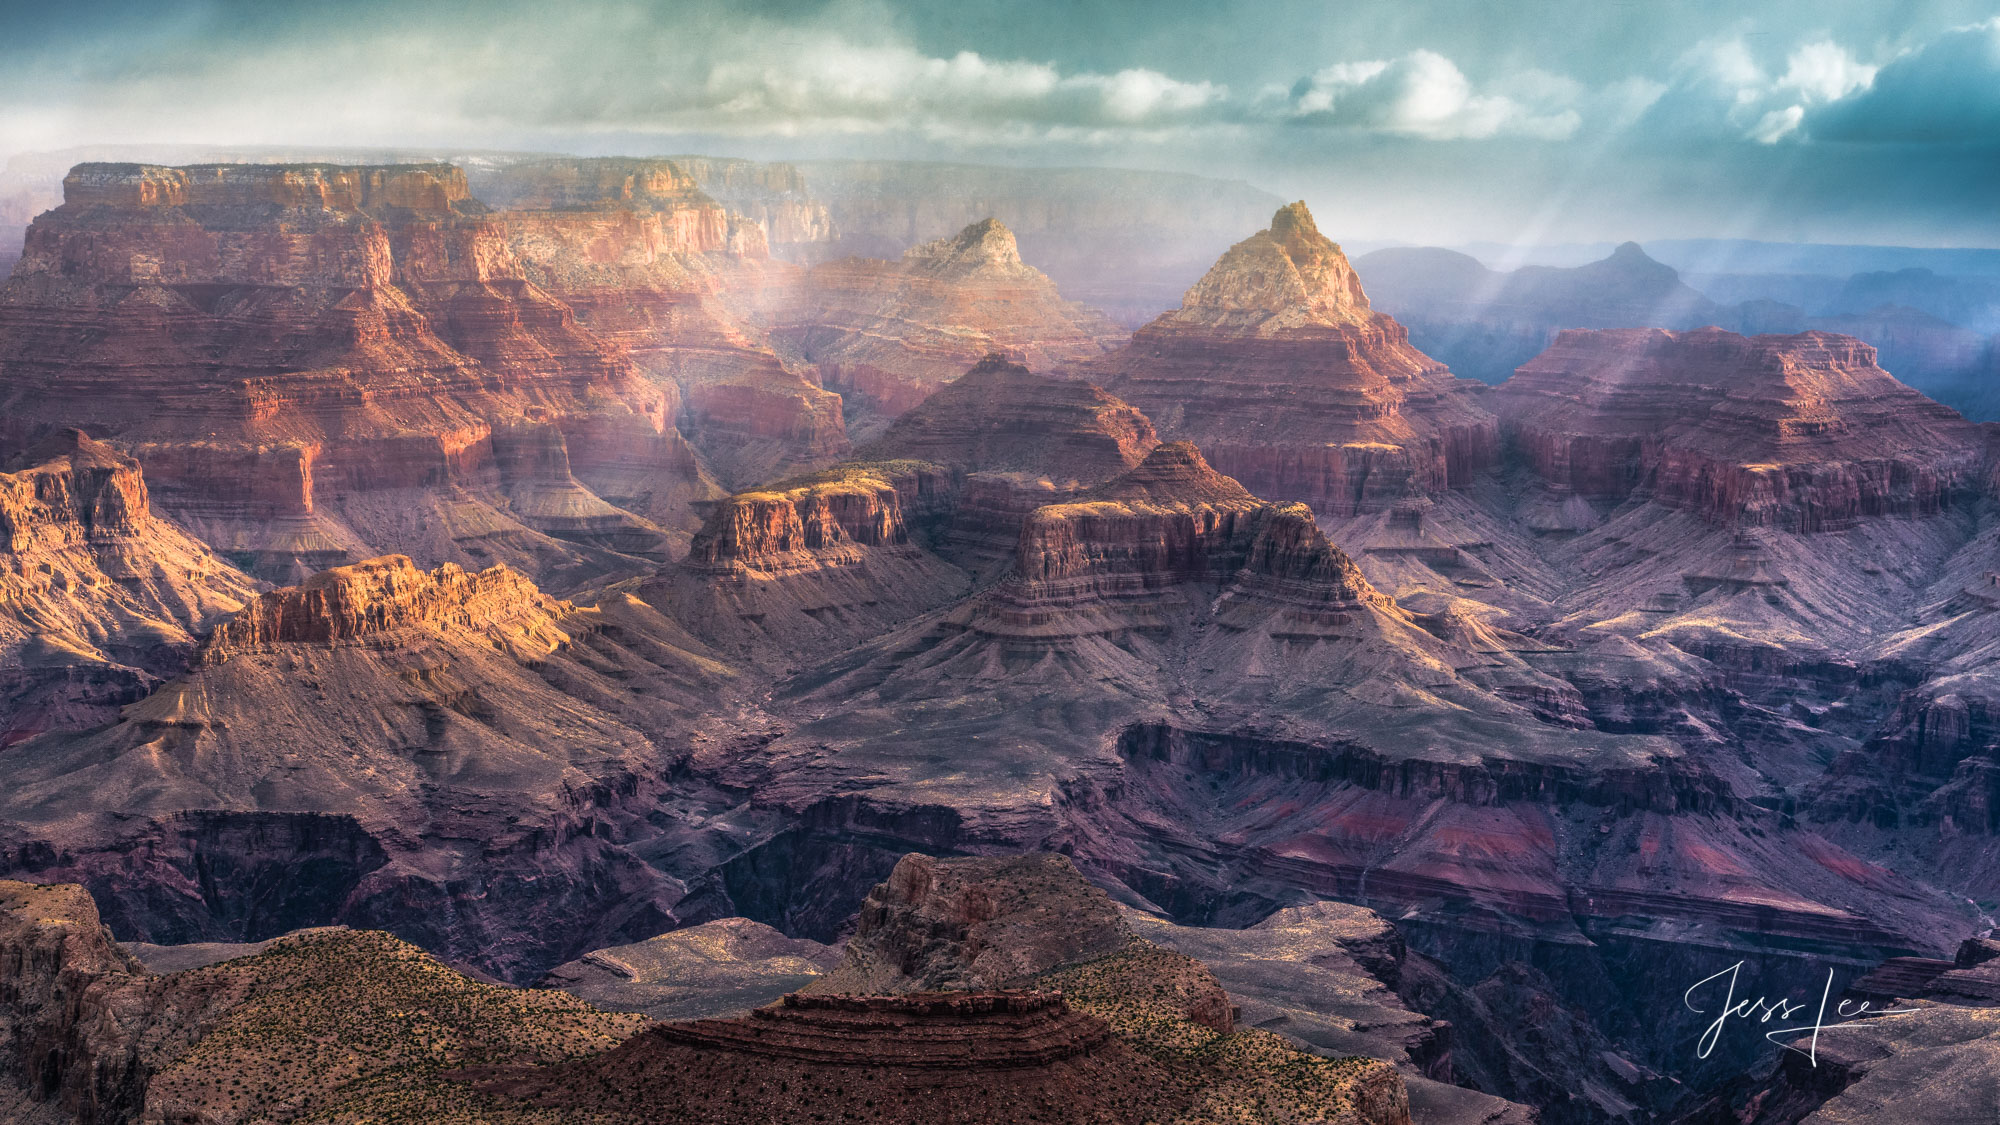 Photo of the Grand Canyon in Arizona, desert, dry, rivers, lakes, monument valley, Navajo, slot canyon, , photo